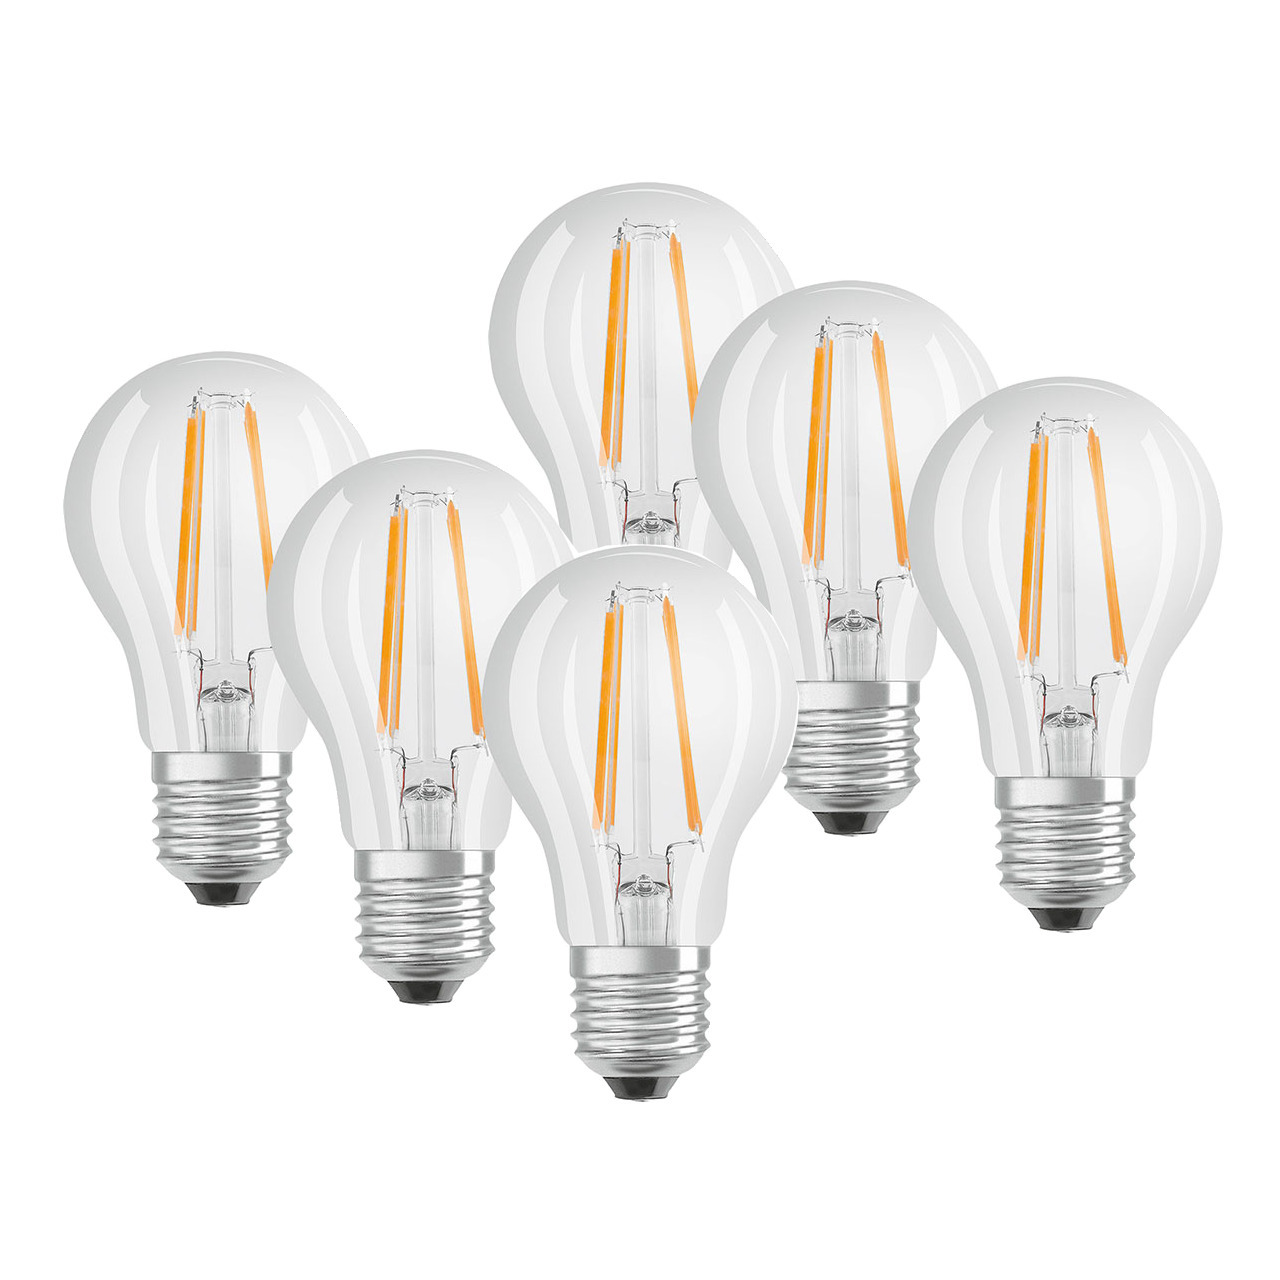 OSRAM 6er Set 7-W-Filament-LED-Lampe E27- warmweiss- klar